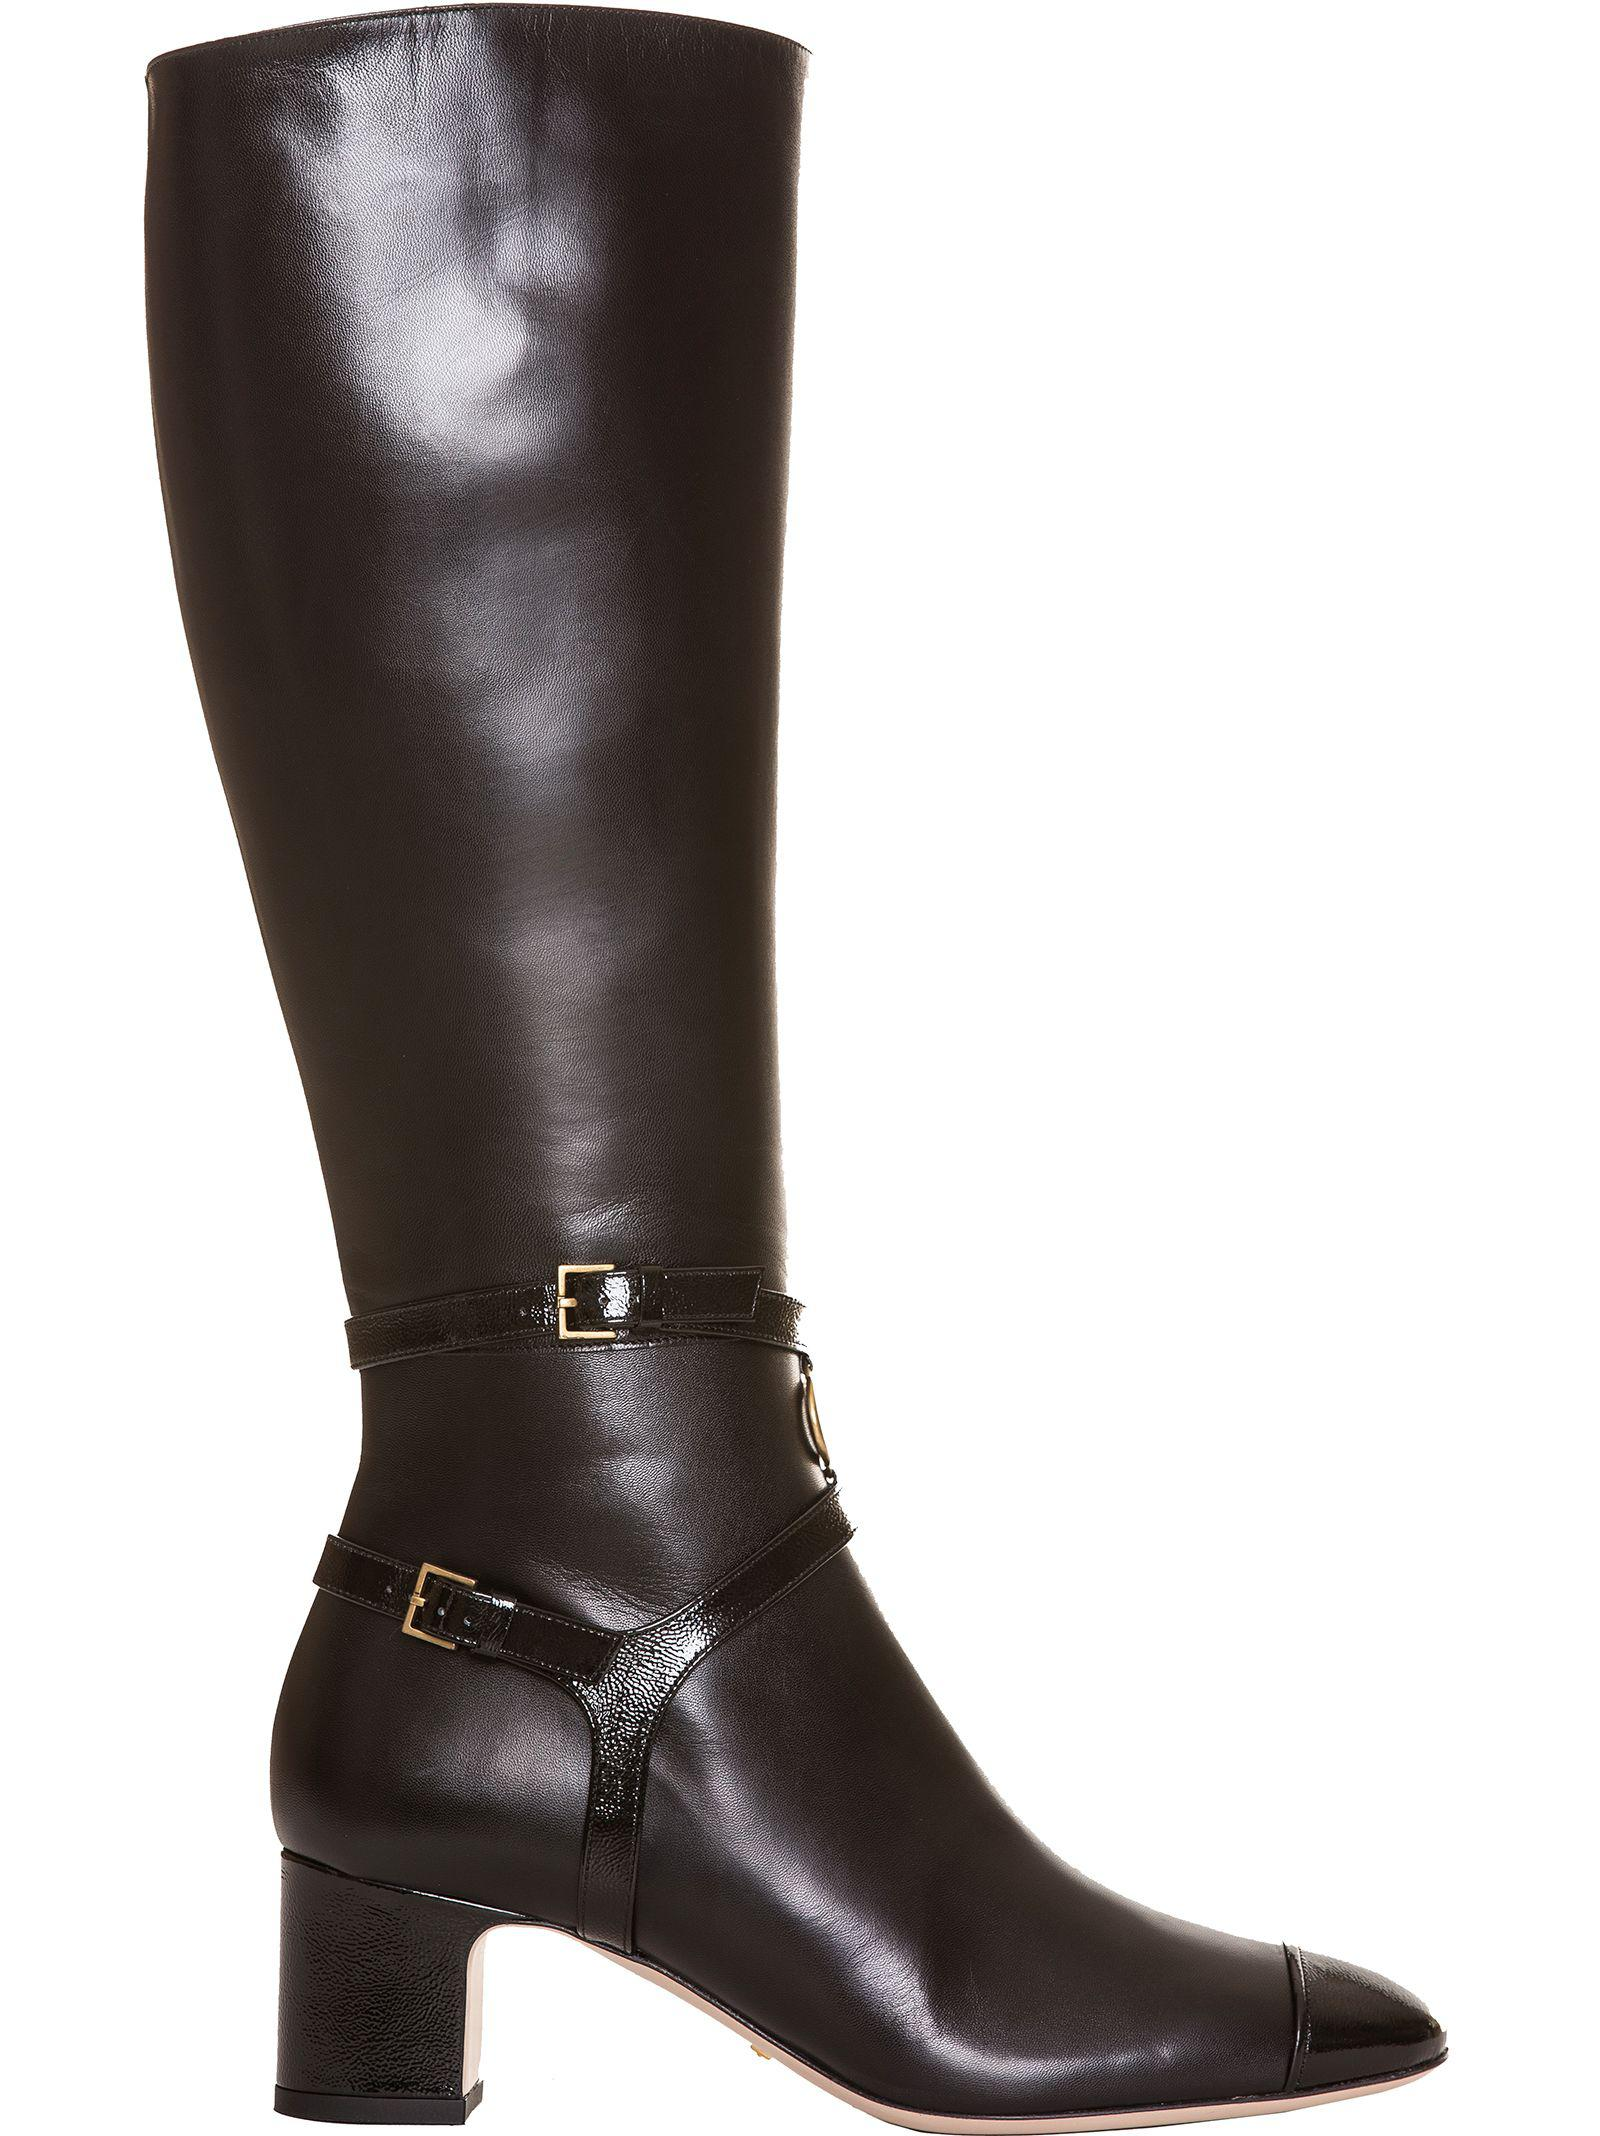 8b099c256551 Gucci Women s Suede Mid Heel Tall Boots In Nero